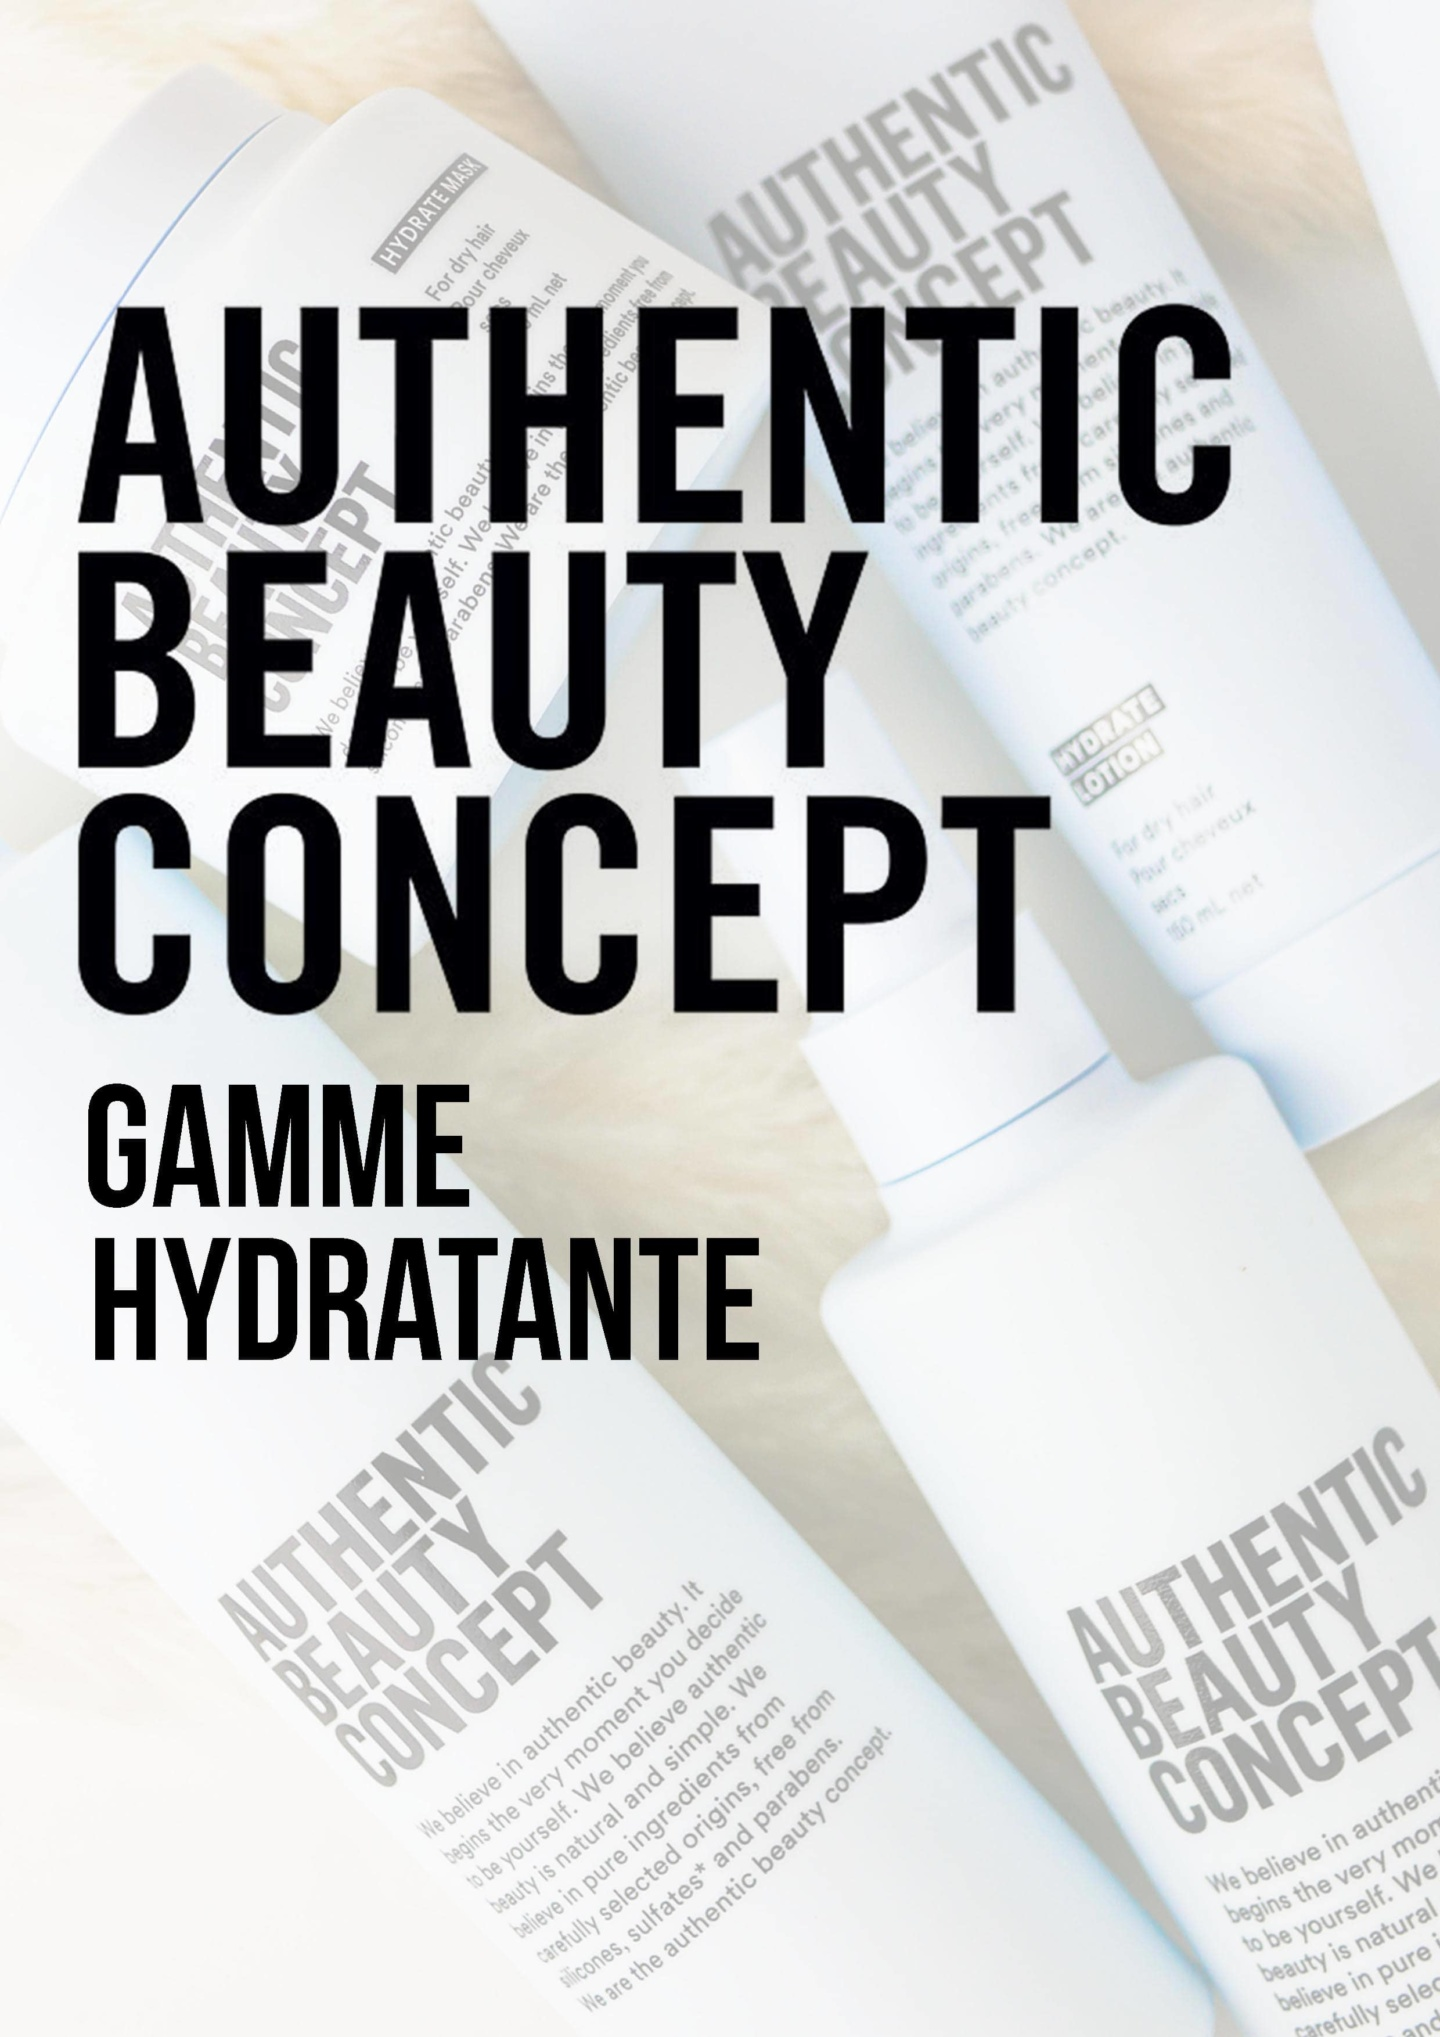 gamme hydratante authentic beauty concept